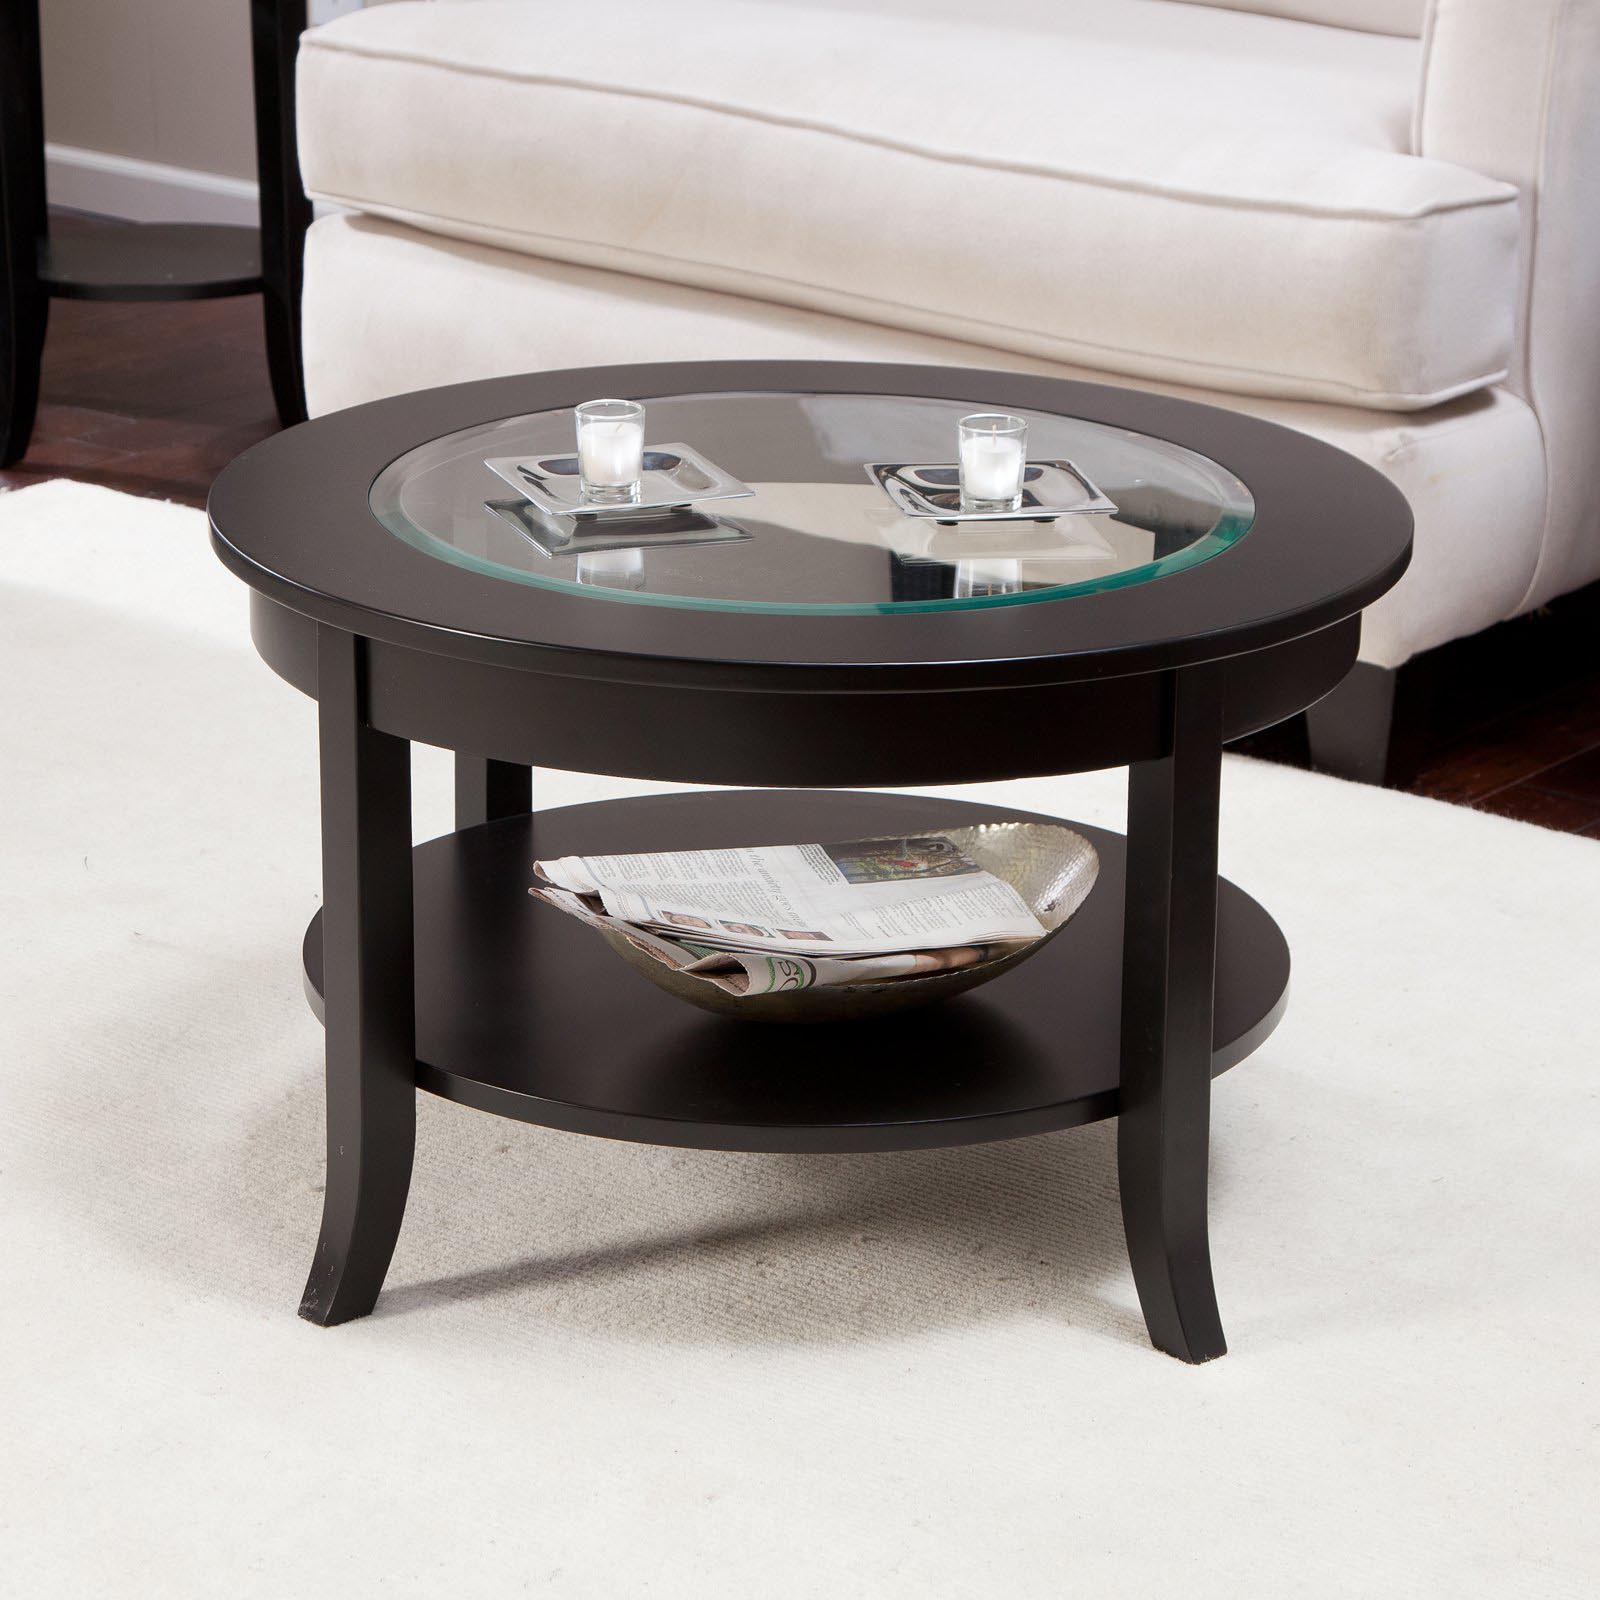 Small Round Coffee Table Coffee Table Design Ideas